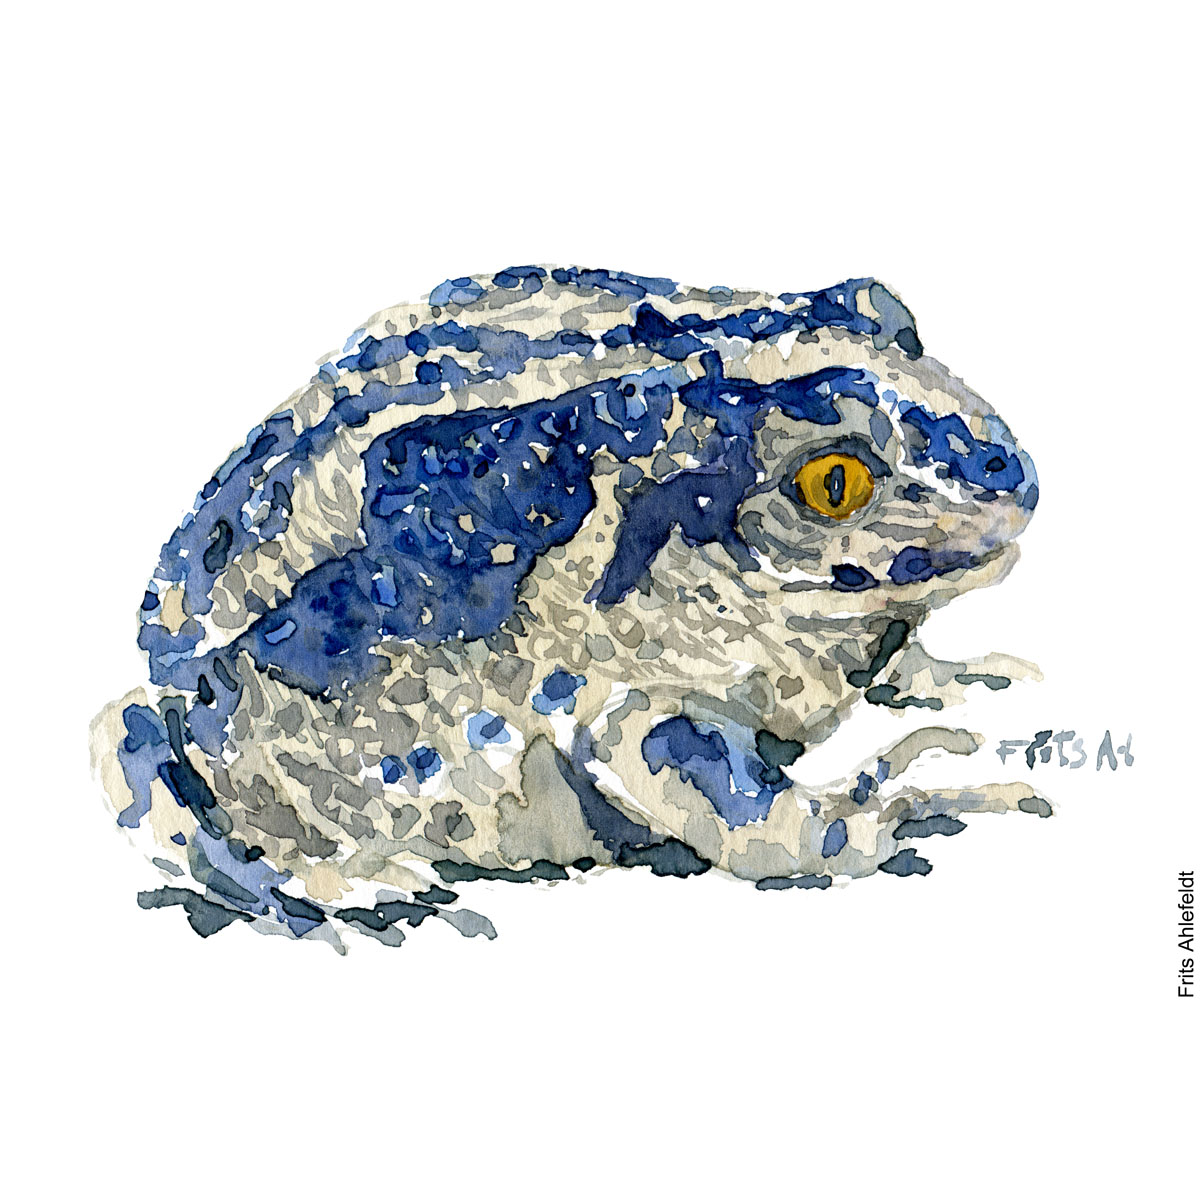 Illustration of blueish common spade-foot toad. Frog watercolor painting handmade by Frits Ahlefeldt